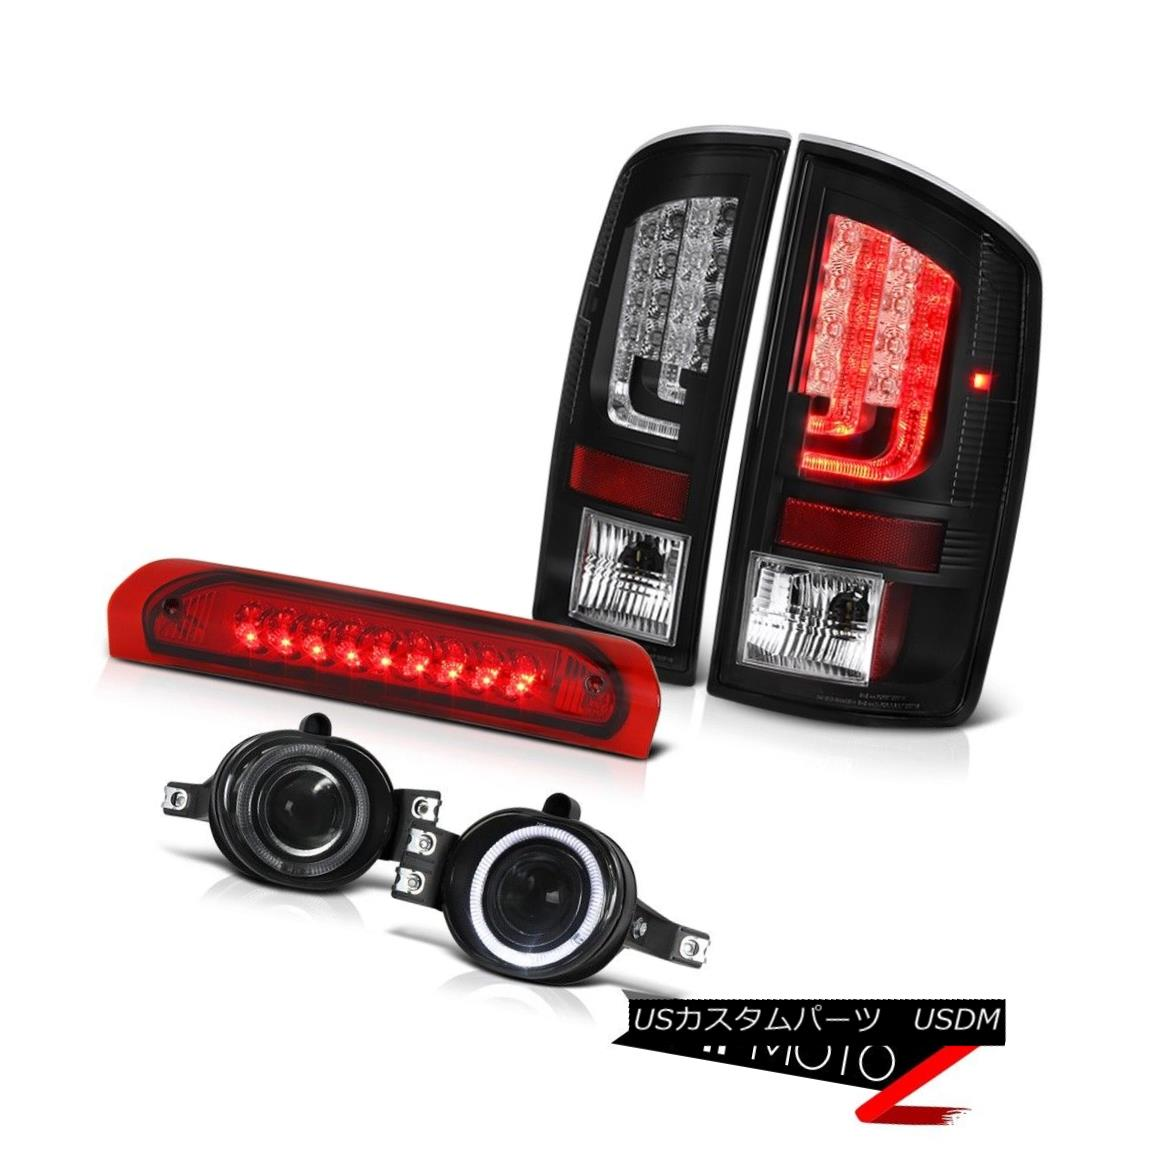 テールライト 07-08 Dodge Ram 1500 ST Black Tail Brake Lights Fog High STop Light